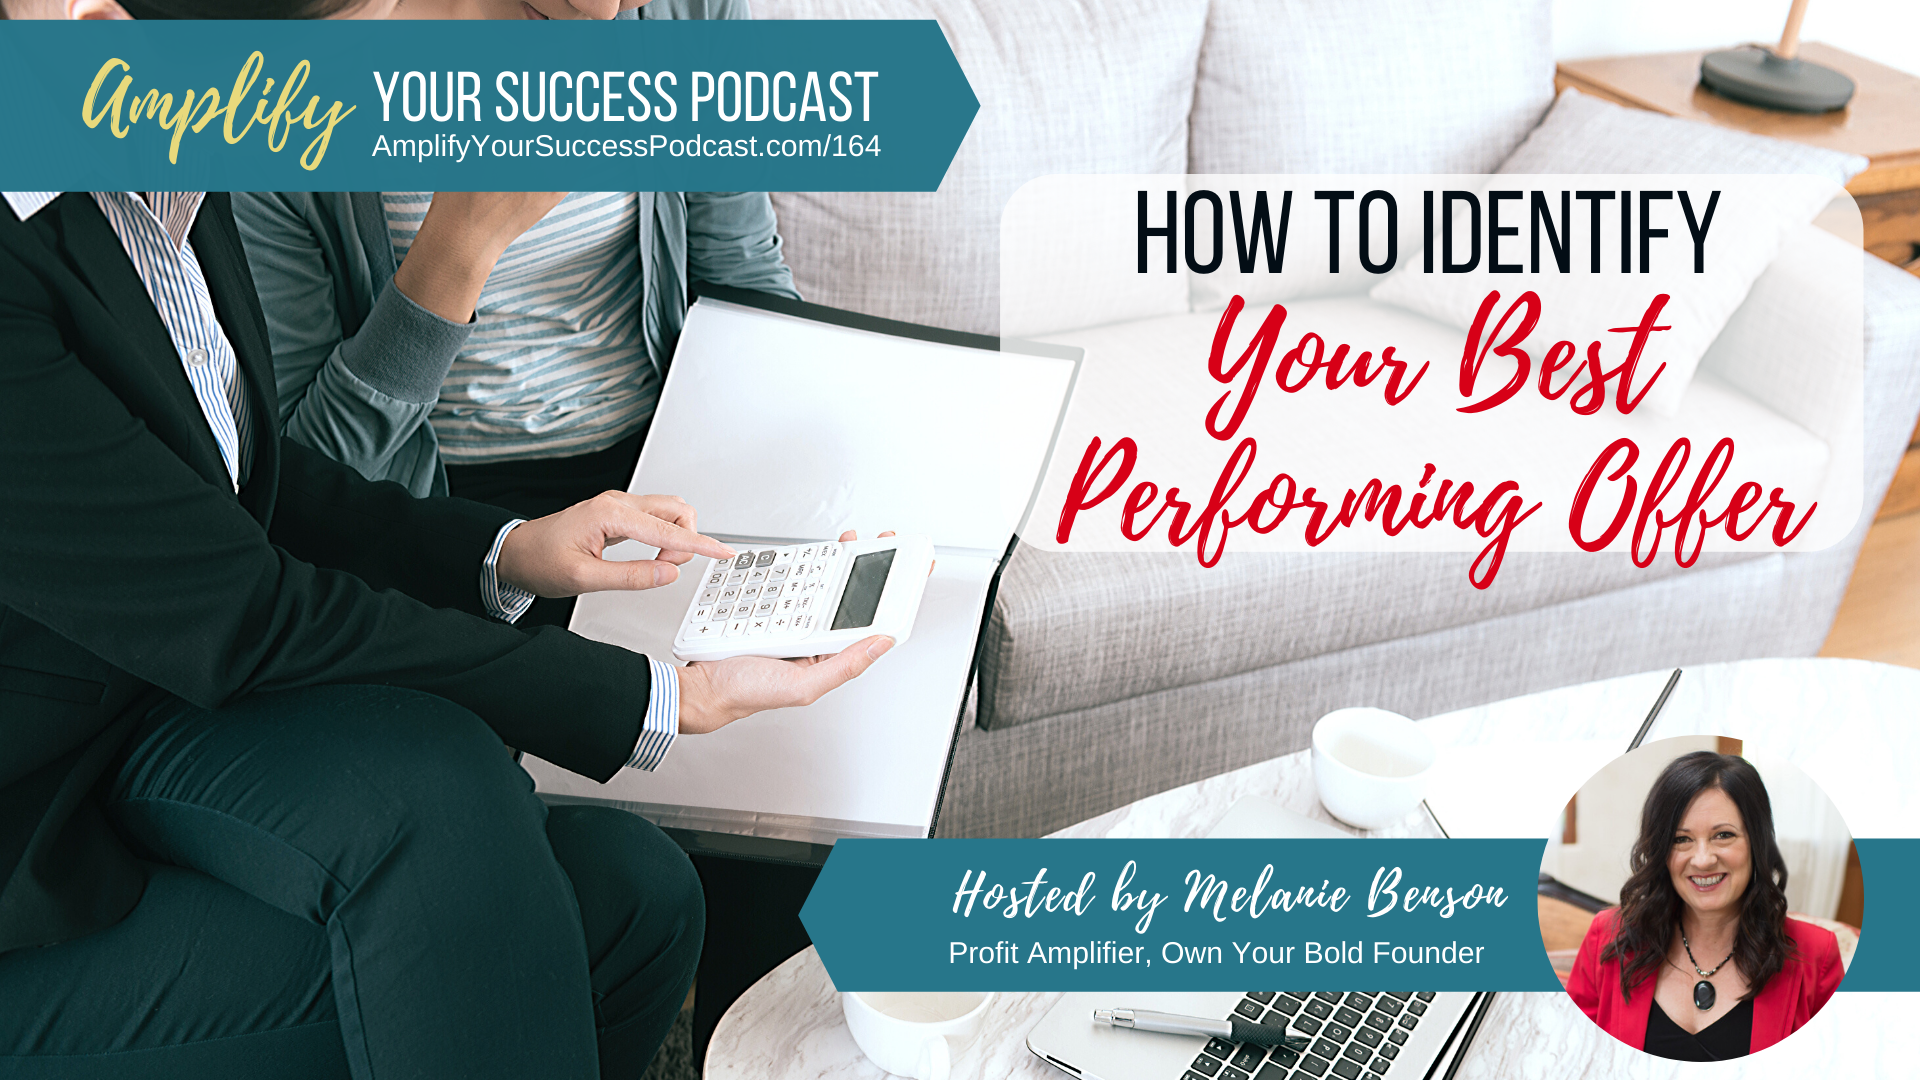 How to Identify Your Best Performing Offer on Amplify Your Success Podcast Episode 164